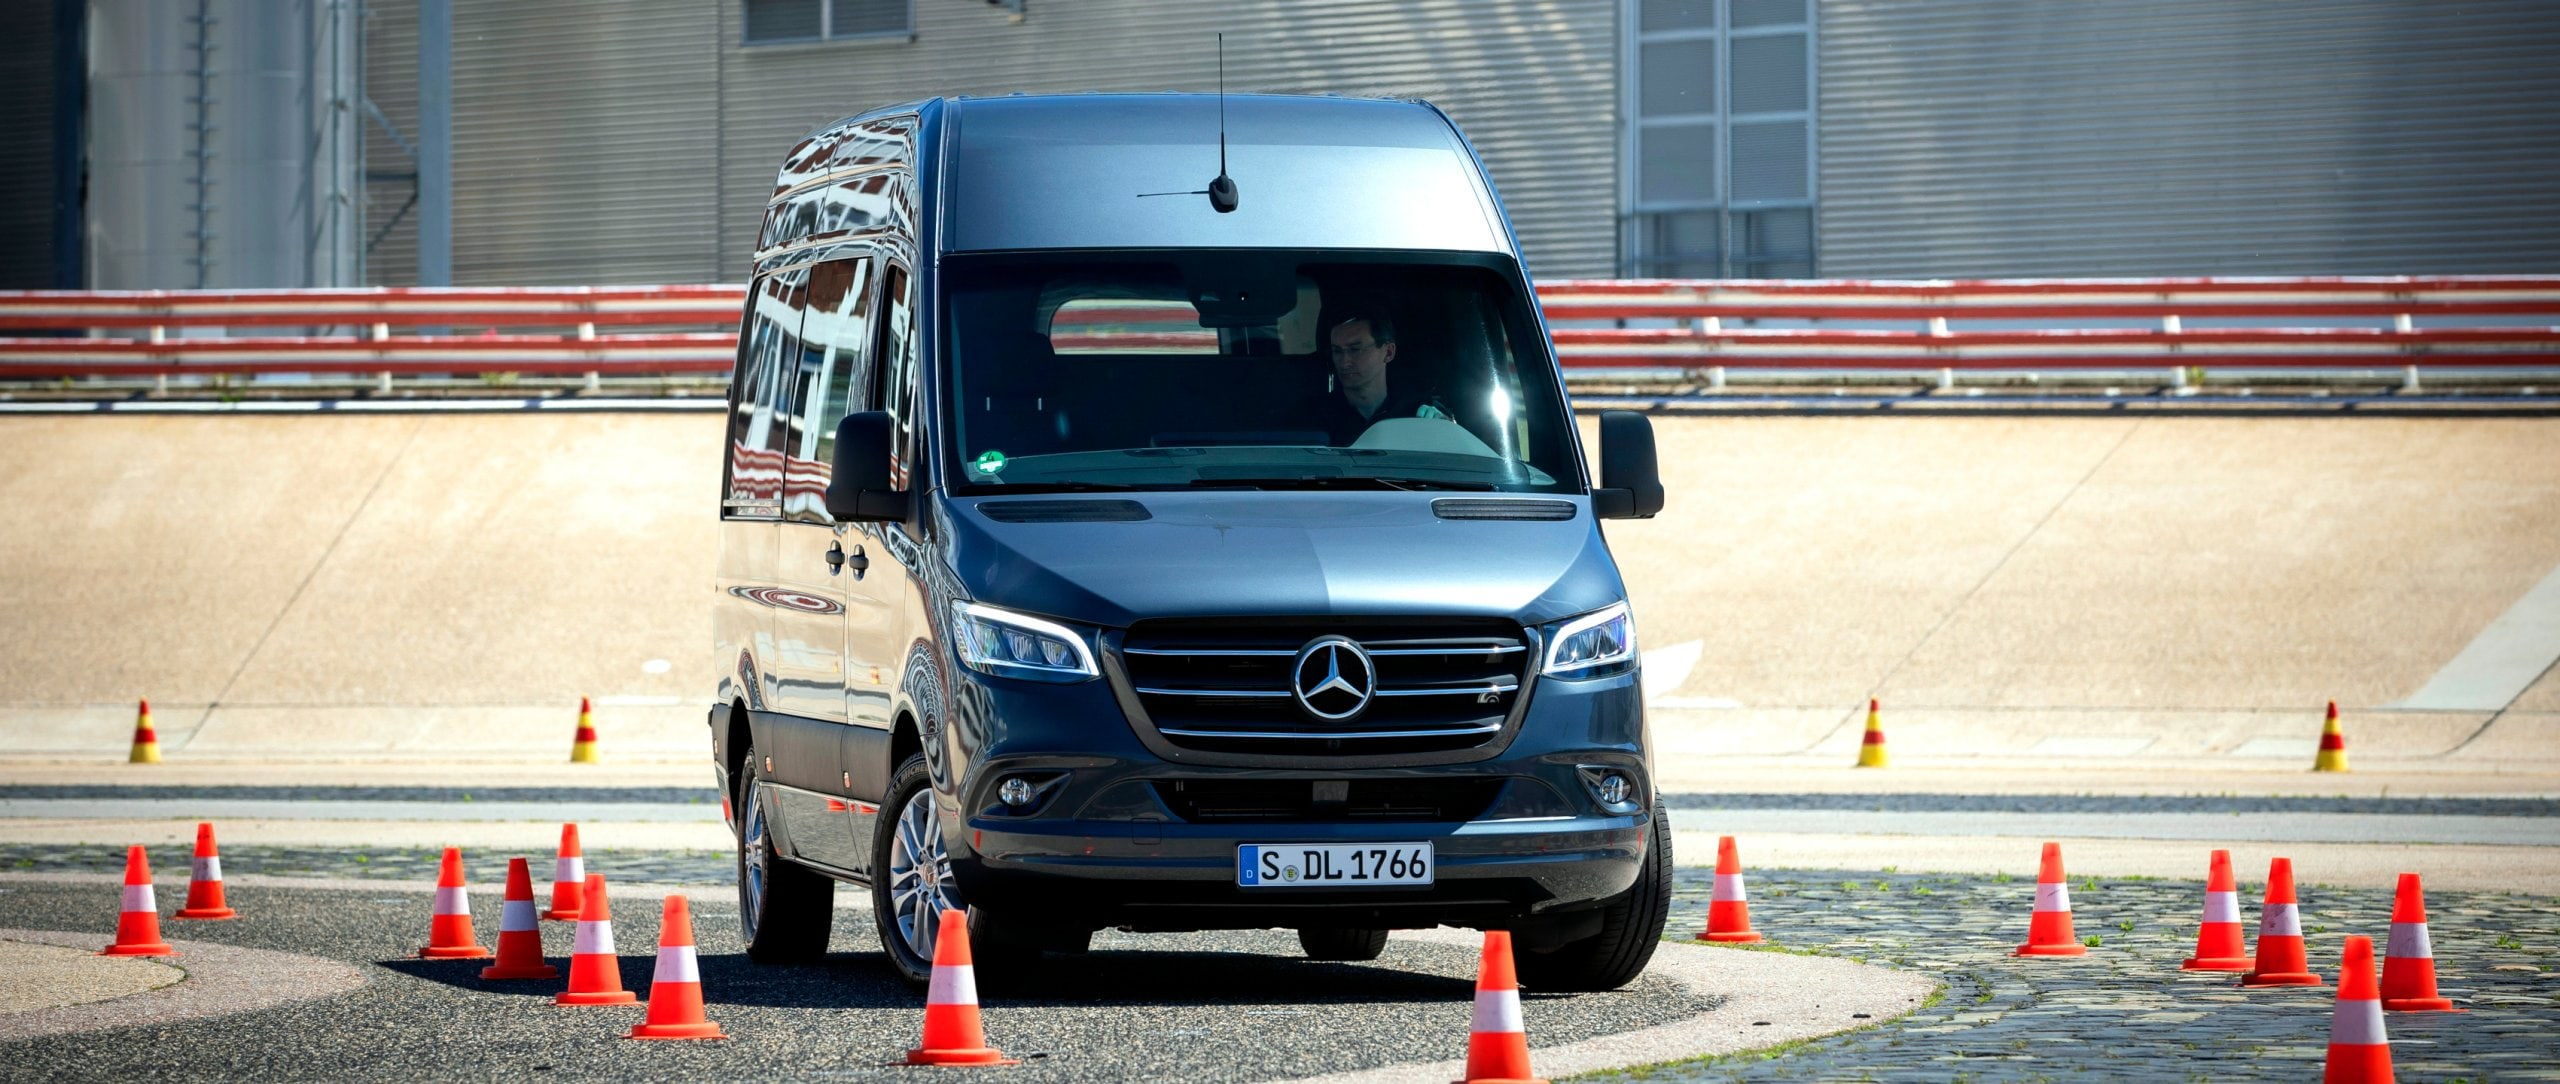 The Mercedes-Benz Sprinter (2019) Safety Workshop in Stuttgart.